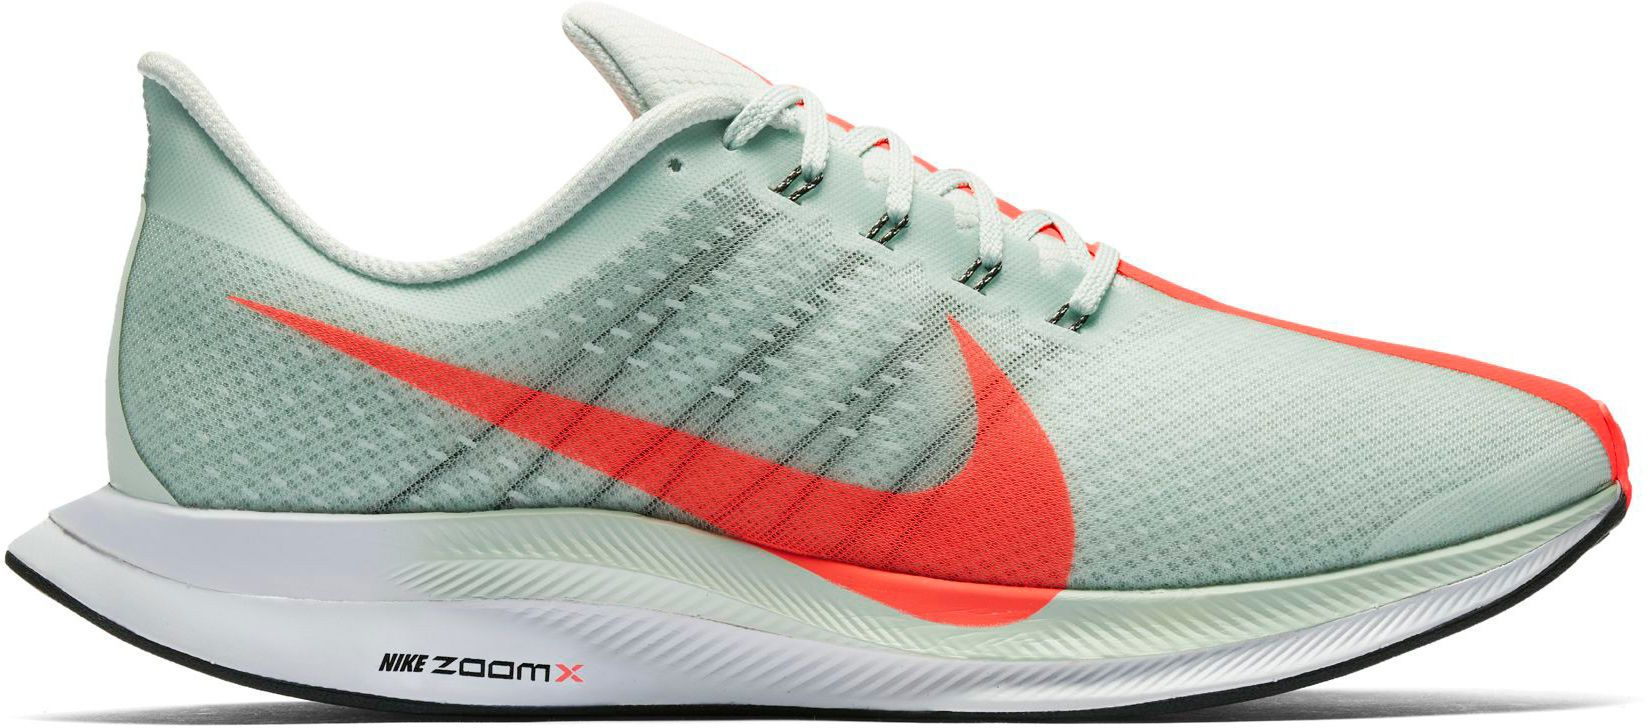 78% OFF Nike zoom x 35 pegasus turbo Running Shoes Gray For